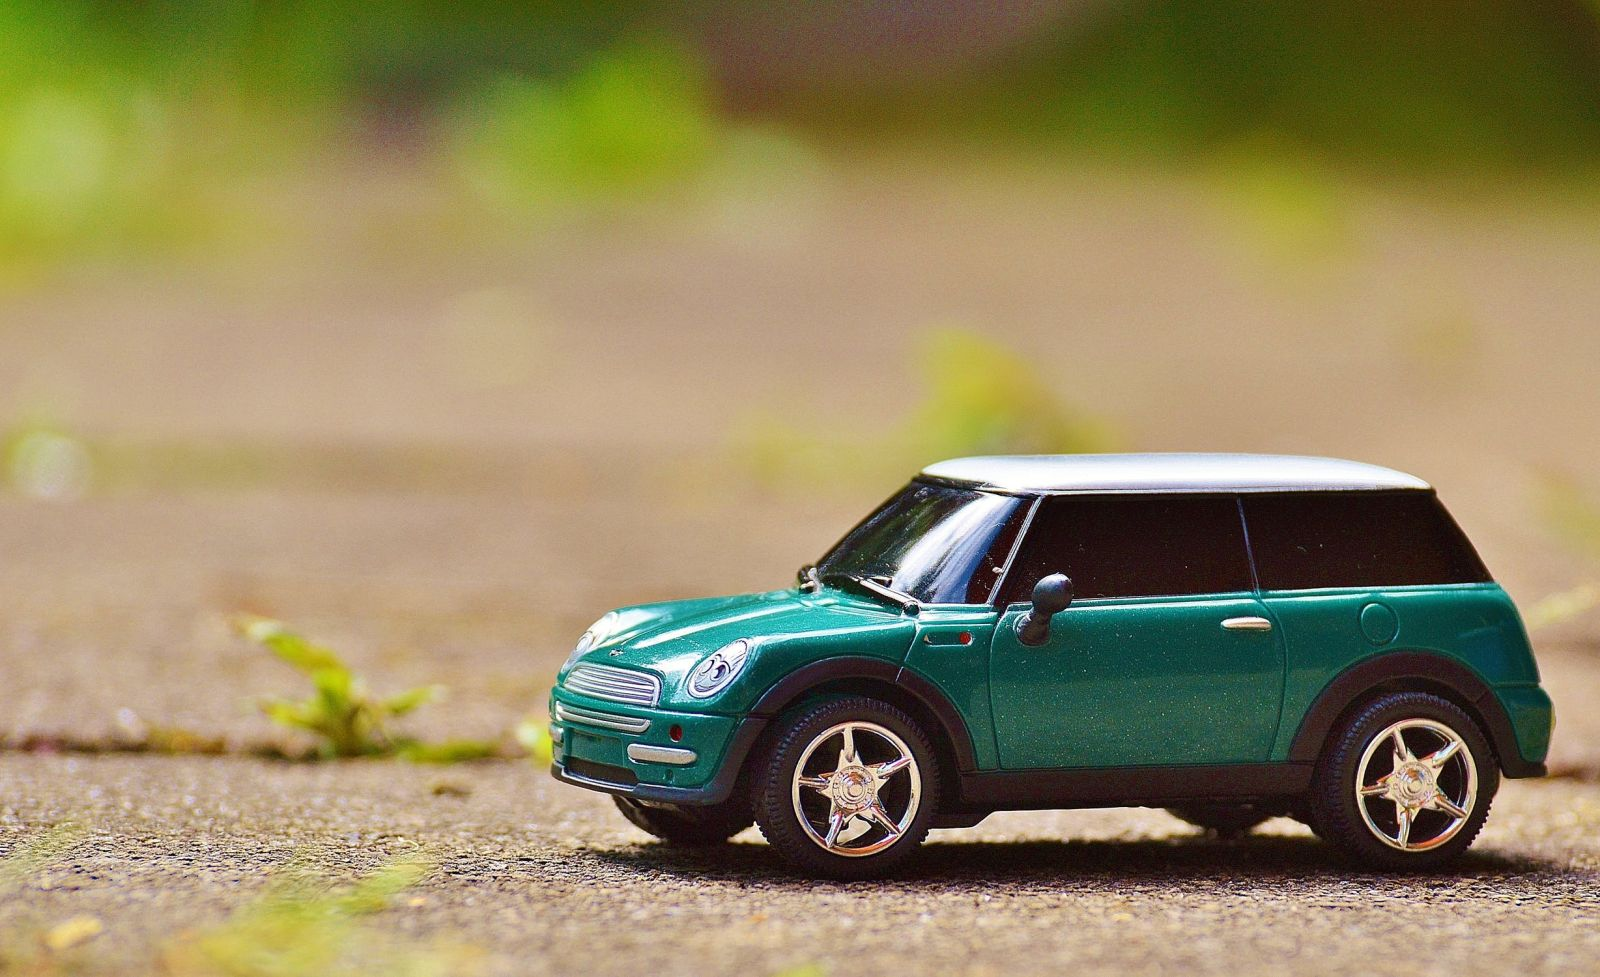 usr_img/2019-09/mini-cooper-auto-model-vehicle.jpg